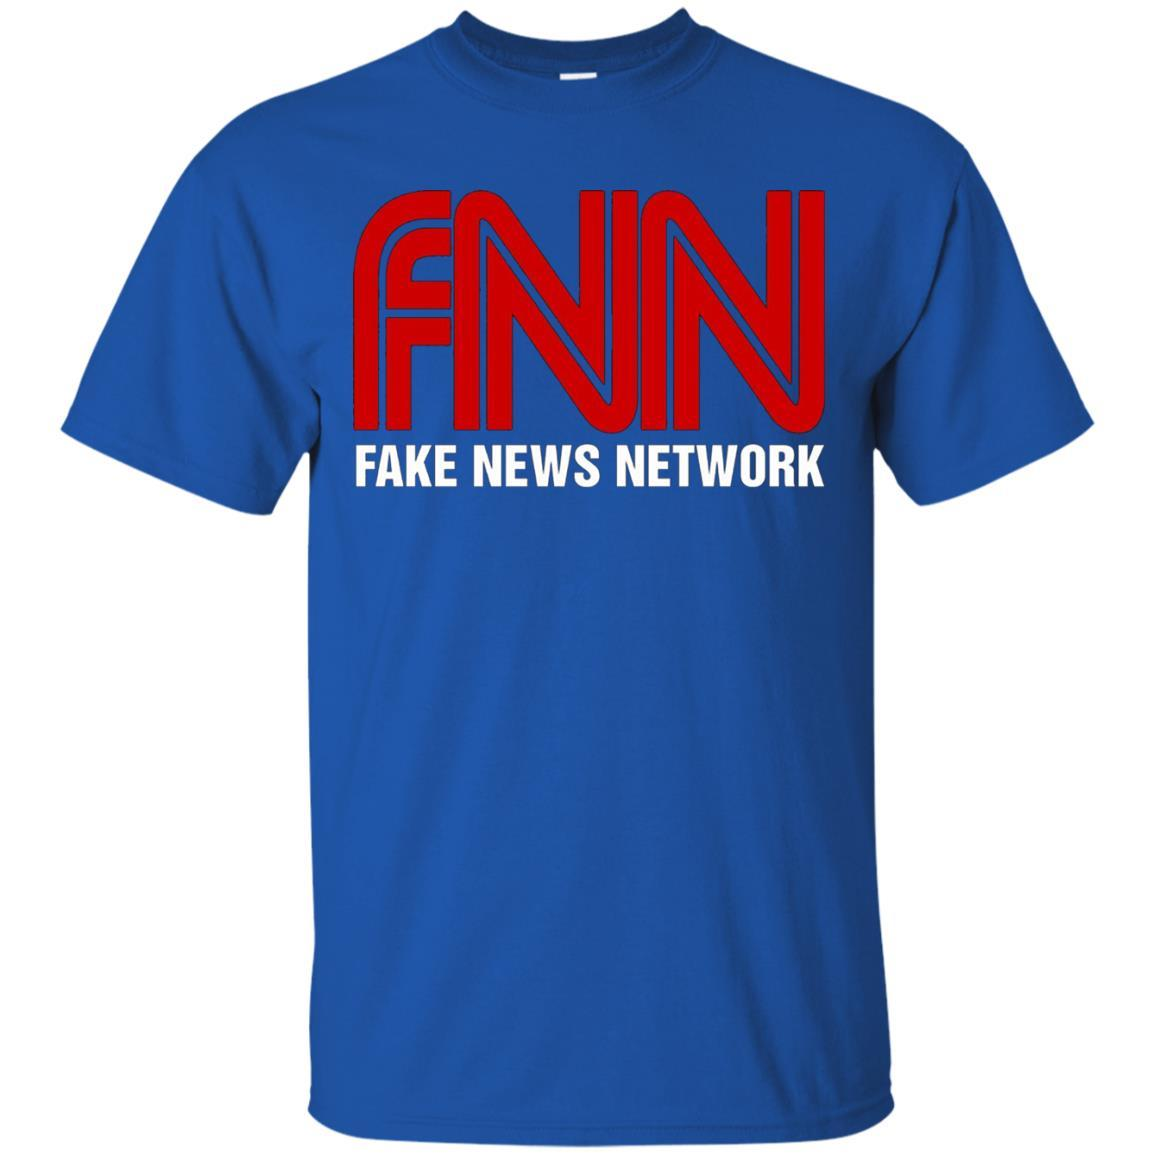 Fake News Network T-Shirt - Funny FNN Logo Humor Quote Tee Royal / 5XL